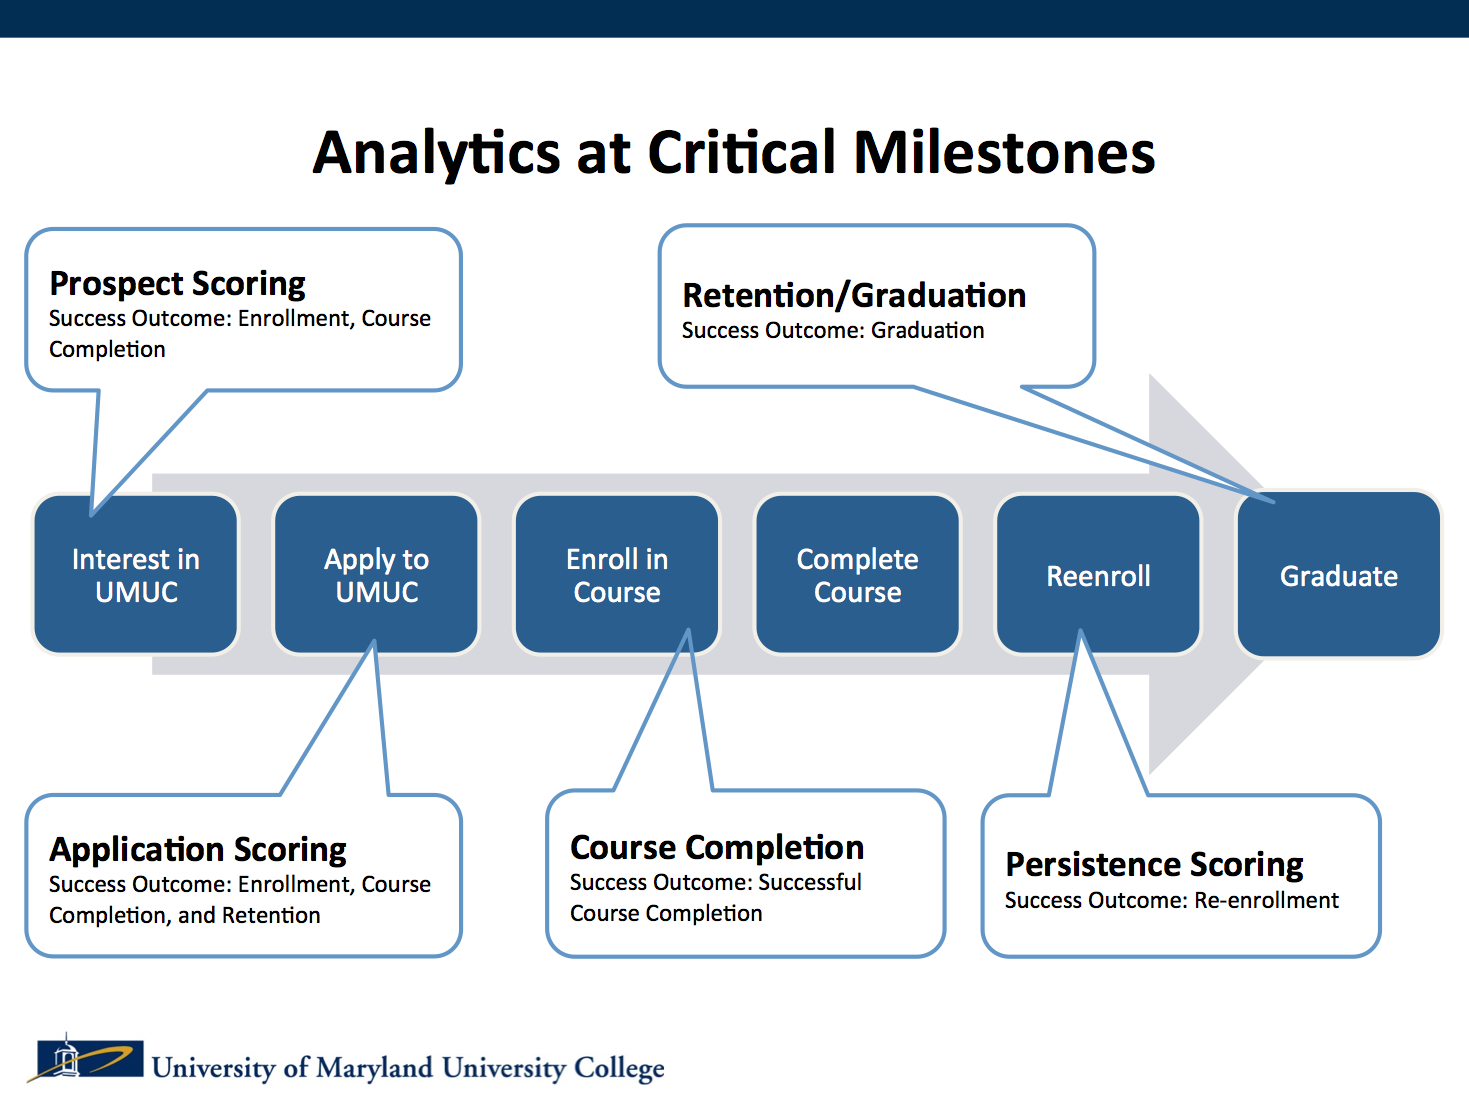 Analytics at Critical Milestones